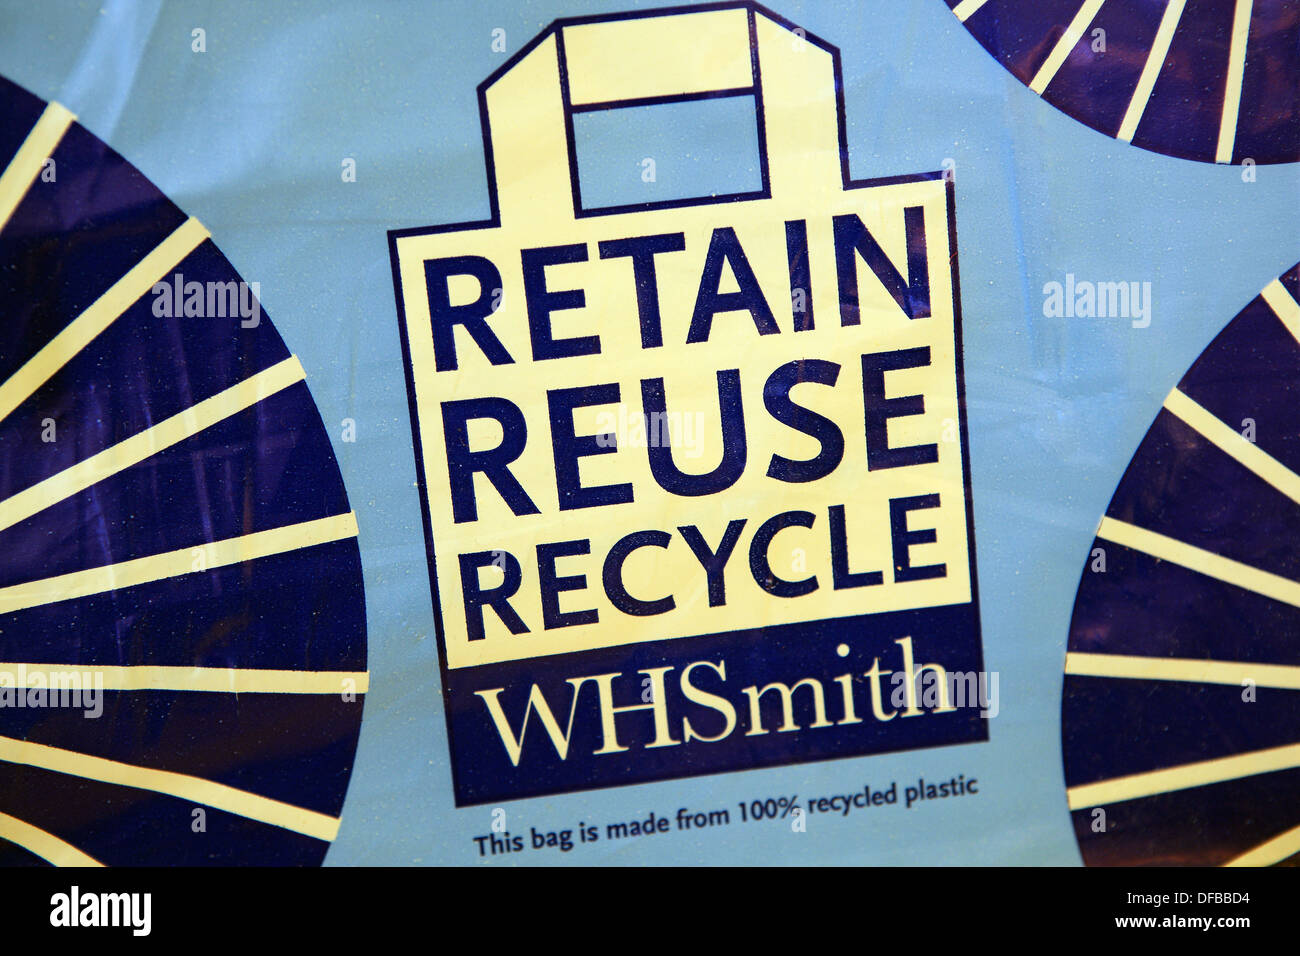 w-h-smith-reuse-and-recycle-carrier-bag-